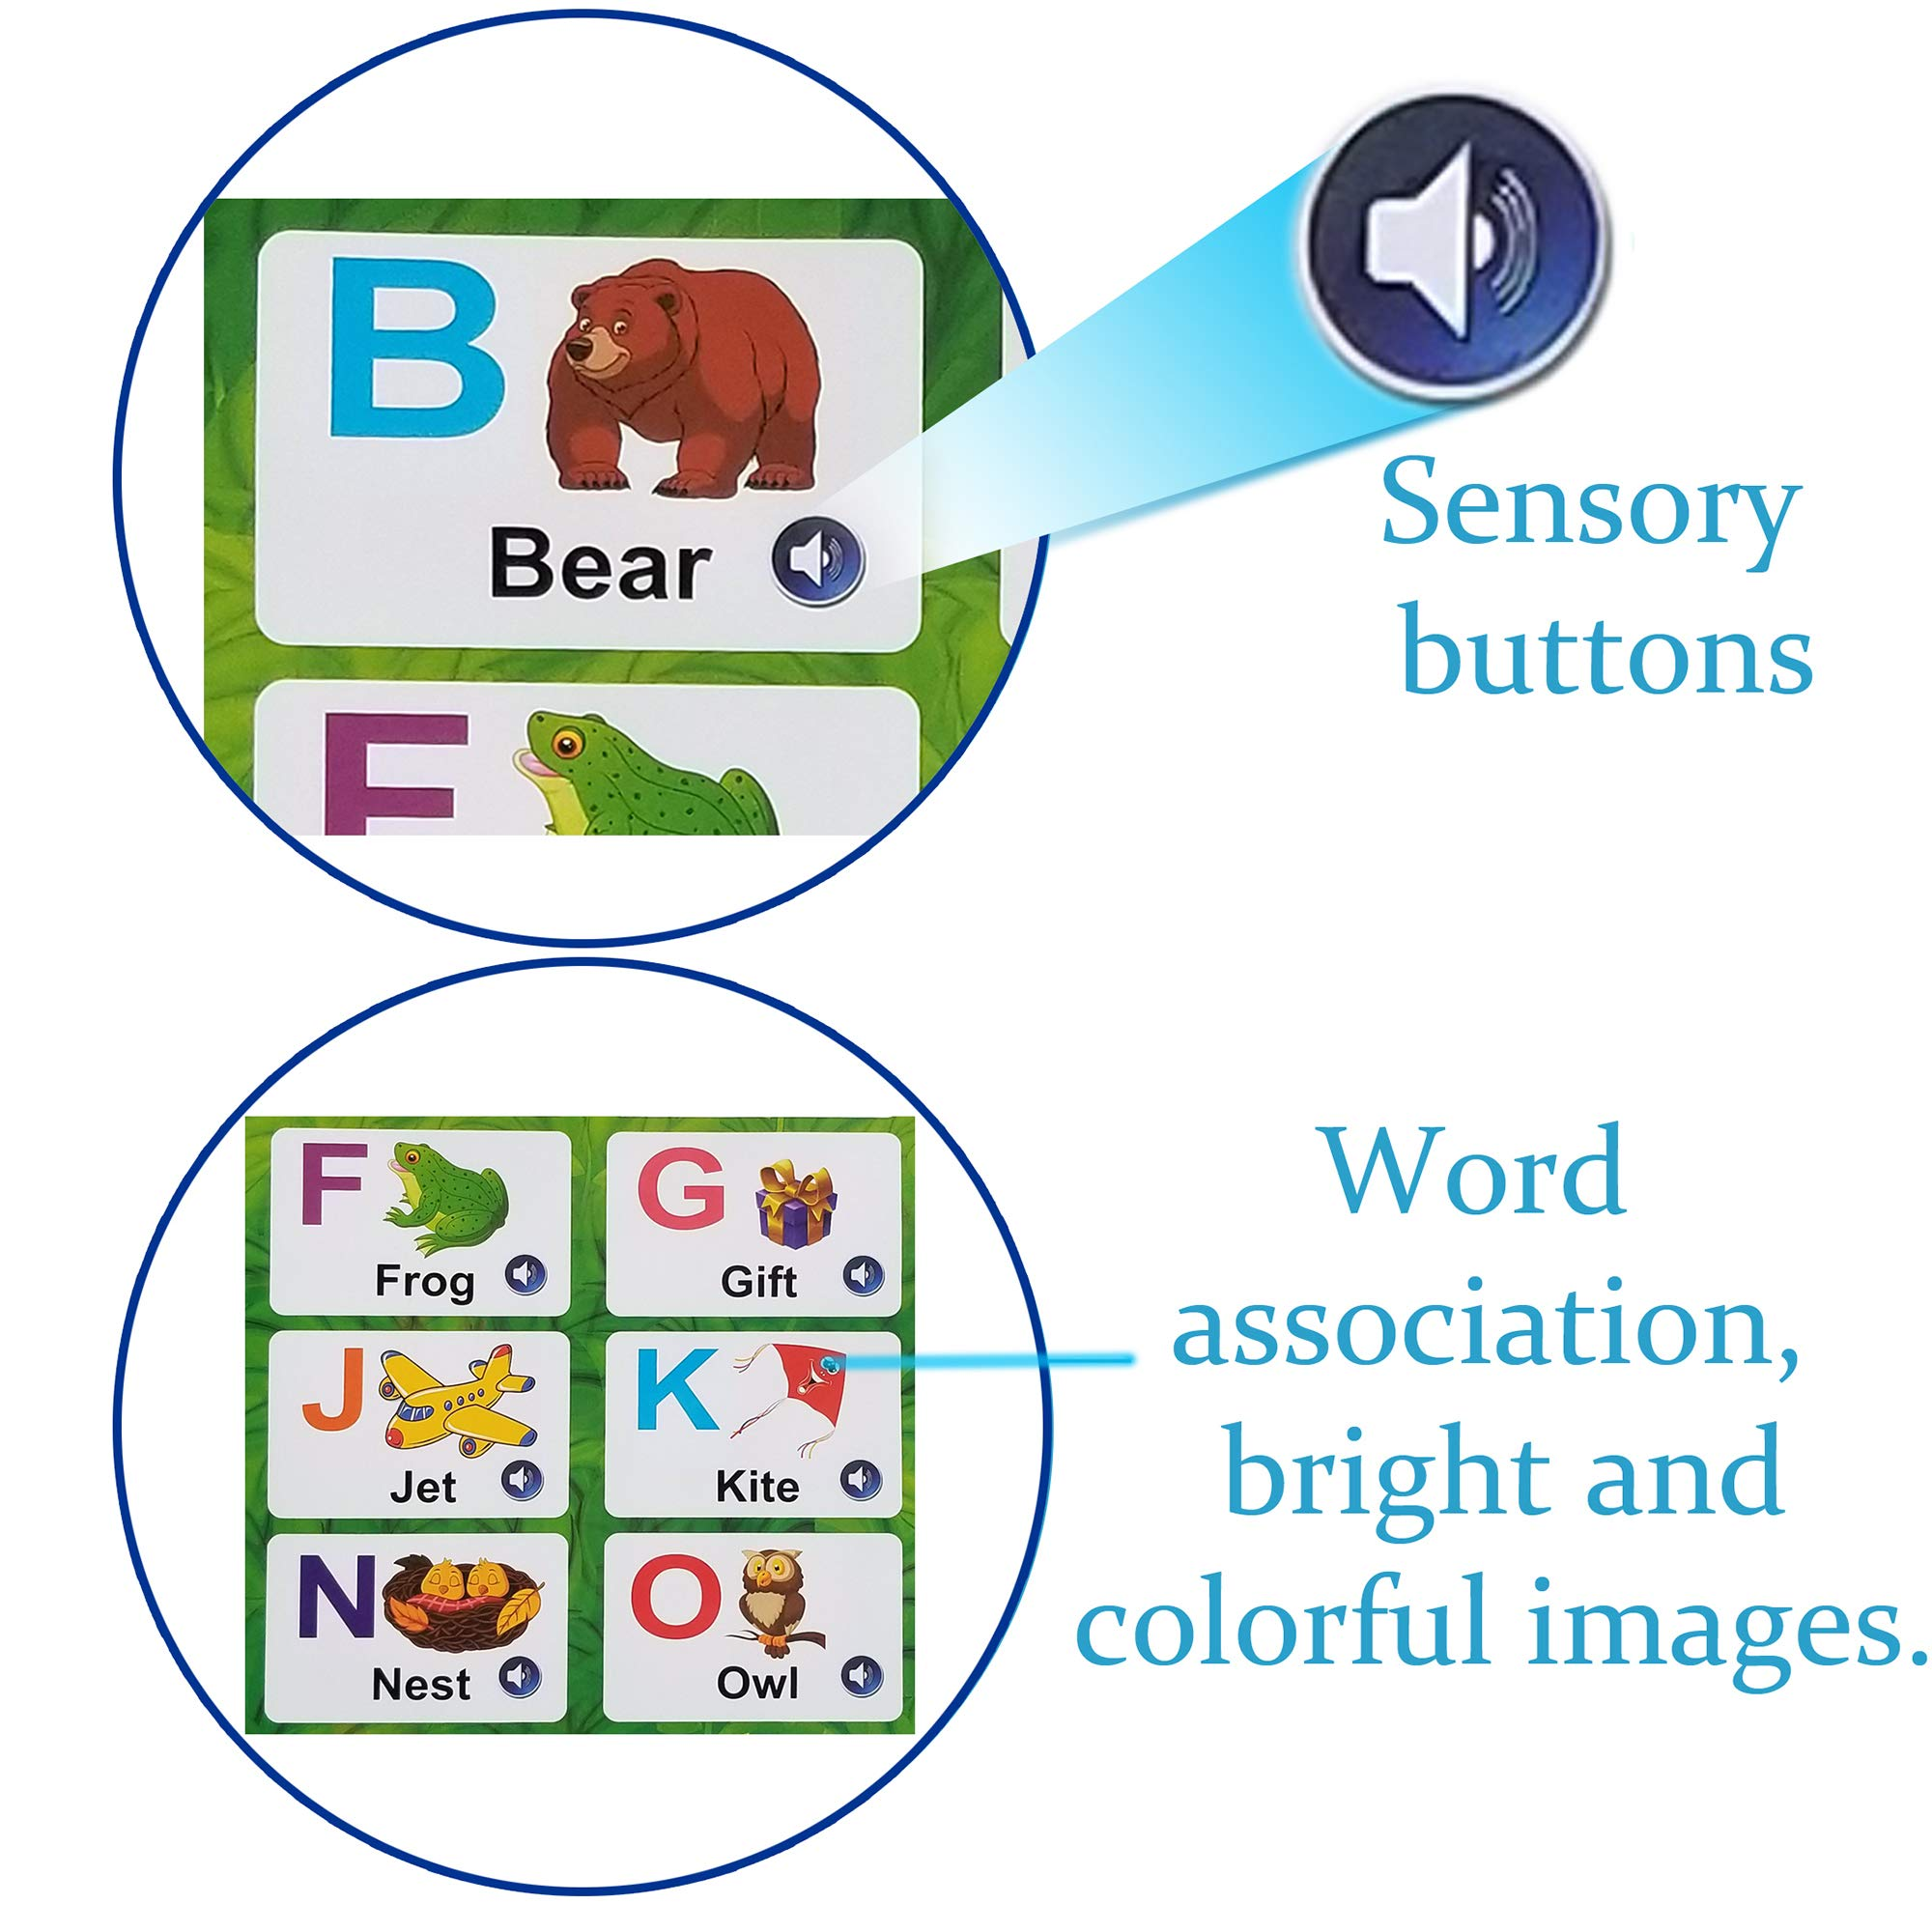 Just Smarty Electronic Interactive Alphabet Wall Chart with Shapes, Colors and Spelling, Talking ABC & 123s & Music Poster, Best Educational Toy for Toddler. Kids Fun Learning at Daycare, Preschool by Just Smarty (Image #2)